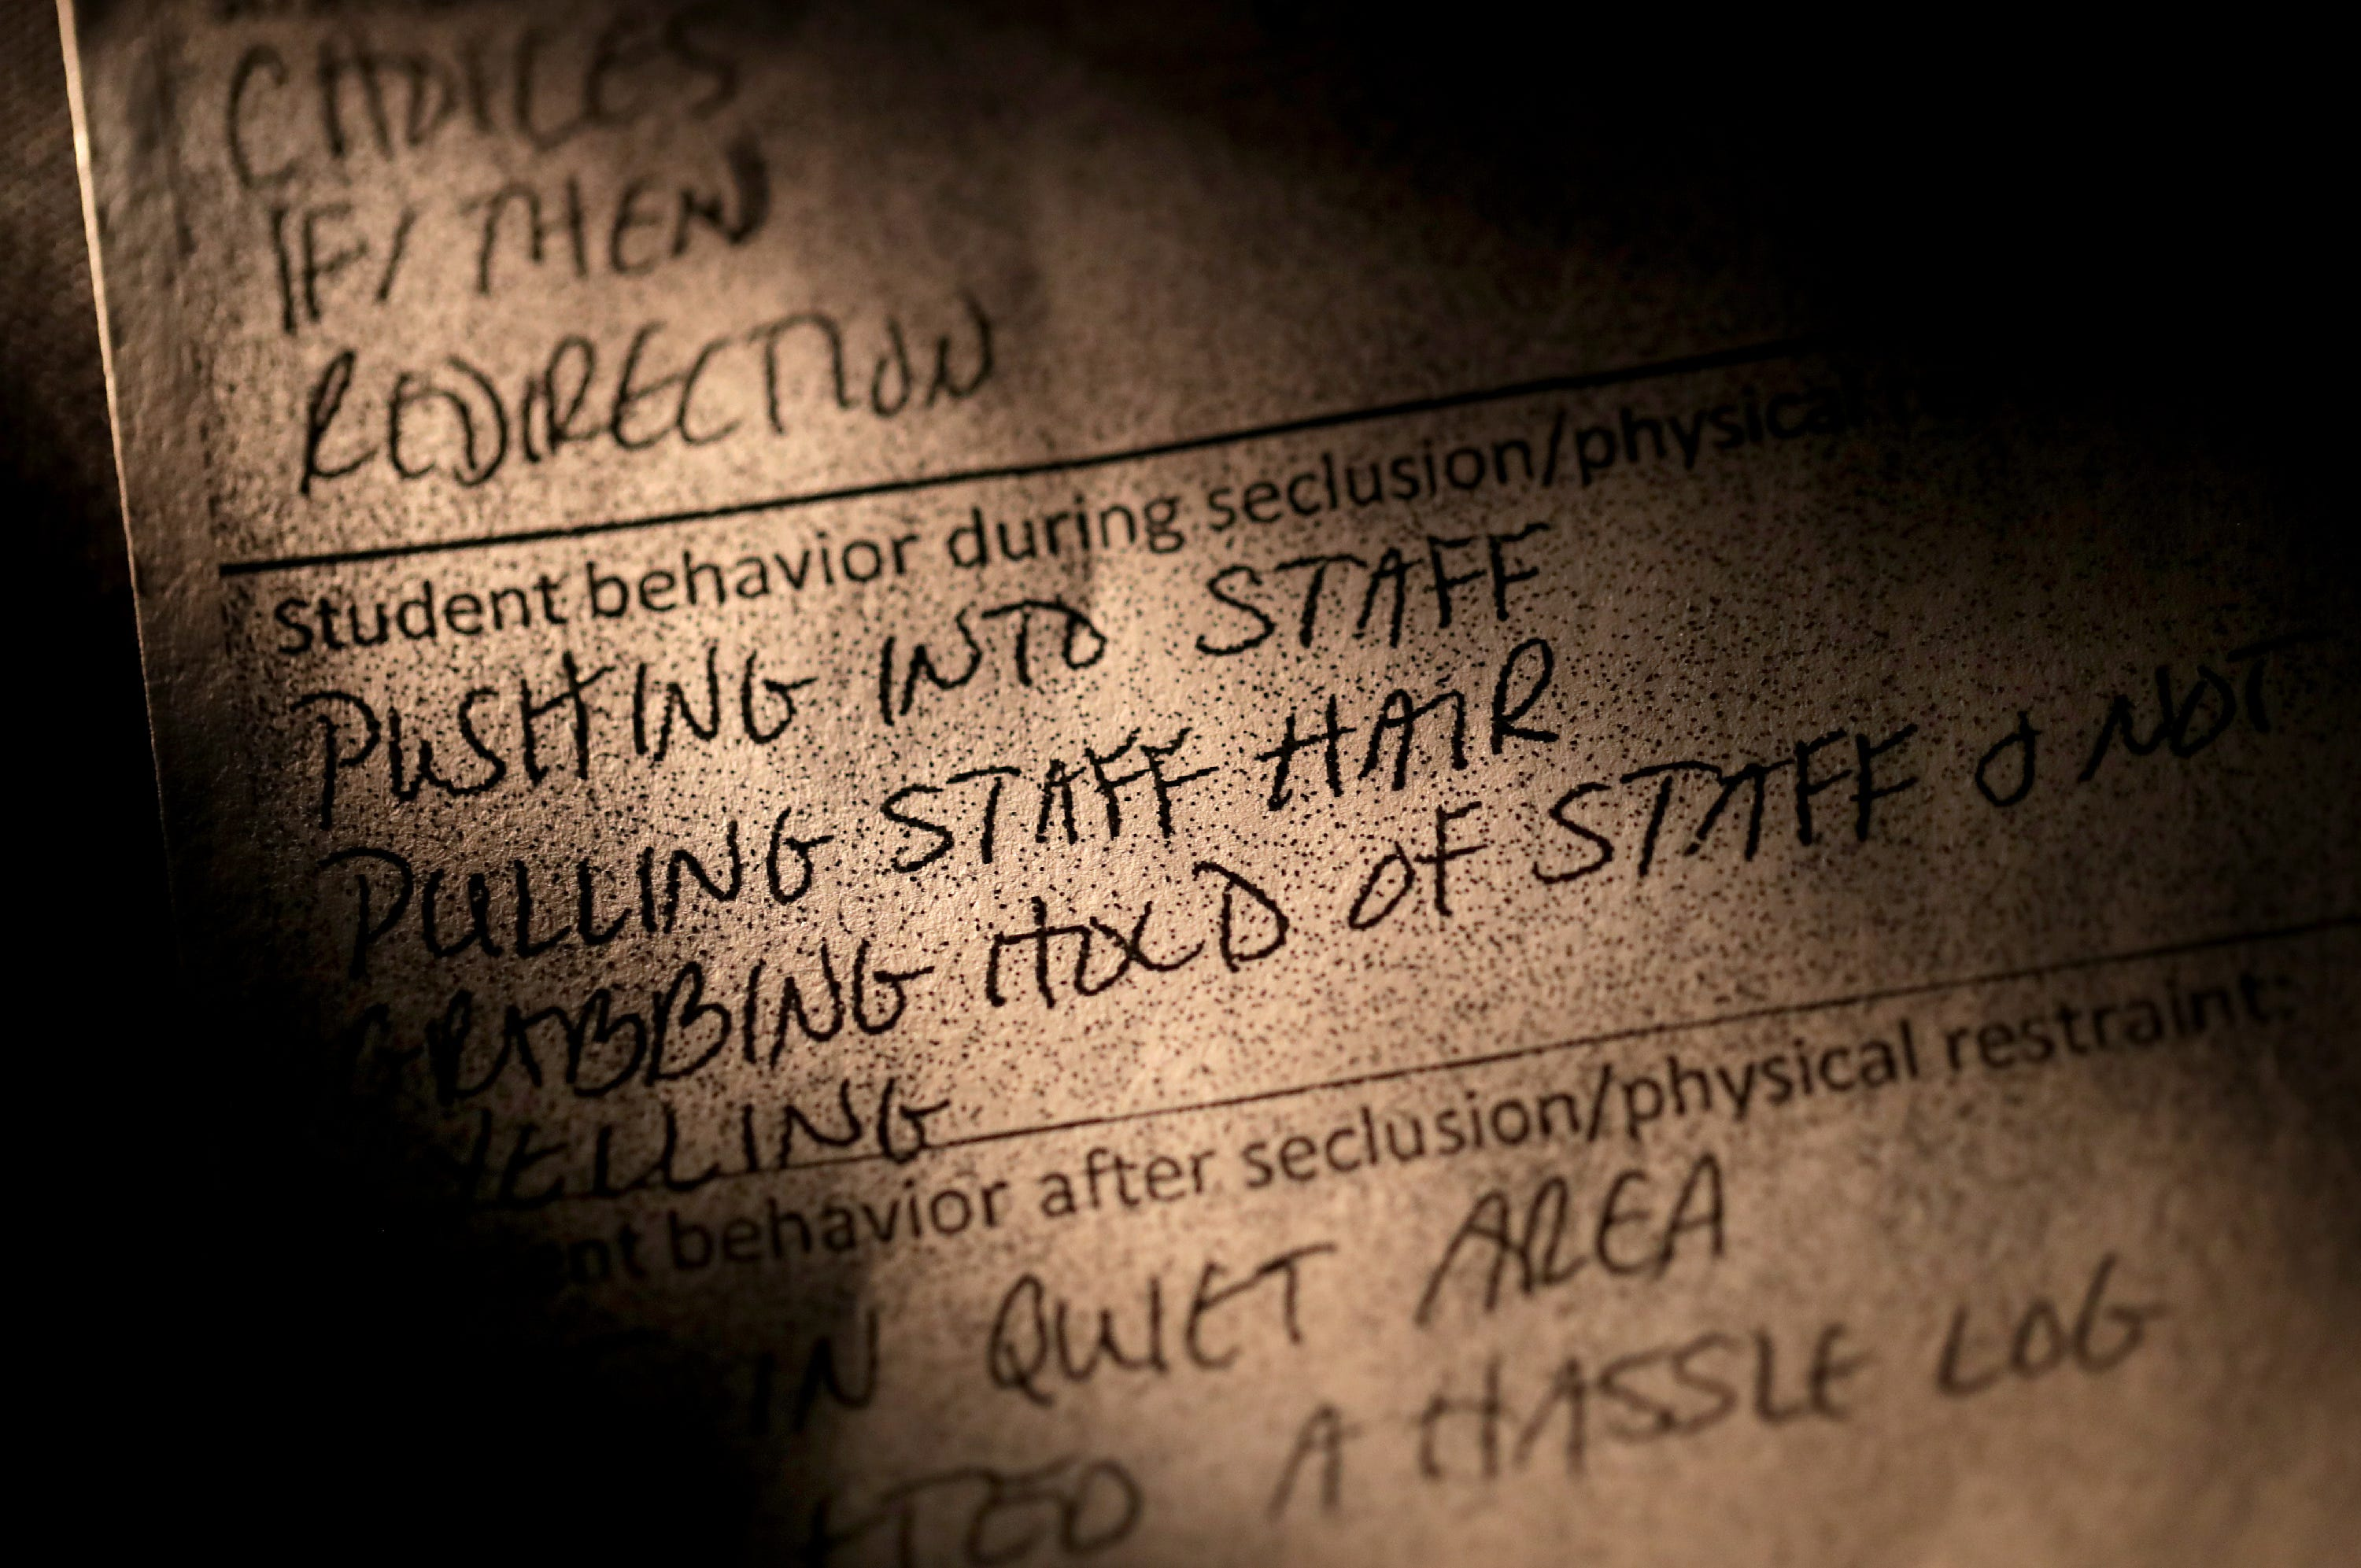 Wisconsin school districts are required by law to inform parents or guardians that a report is available to them after an incident of seclusion or restraint. But Amber McGinley says reports like these, photographed Feb. 4, are often incomplete, don't align with what teachers or administrators tell her in person or over the phone and often don't give a full explanation of what led her son to melt down.